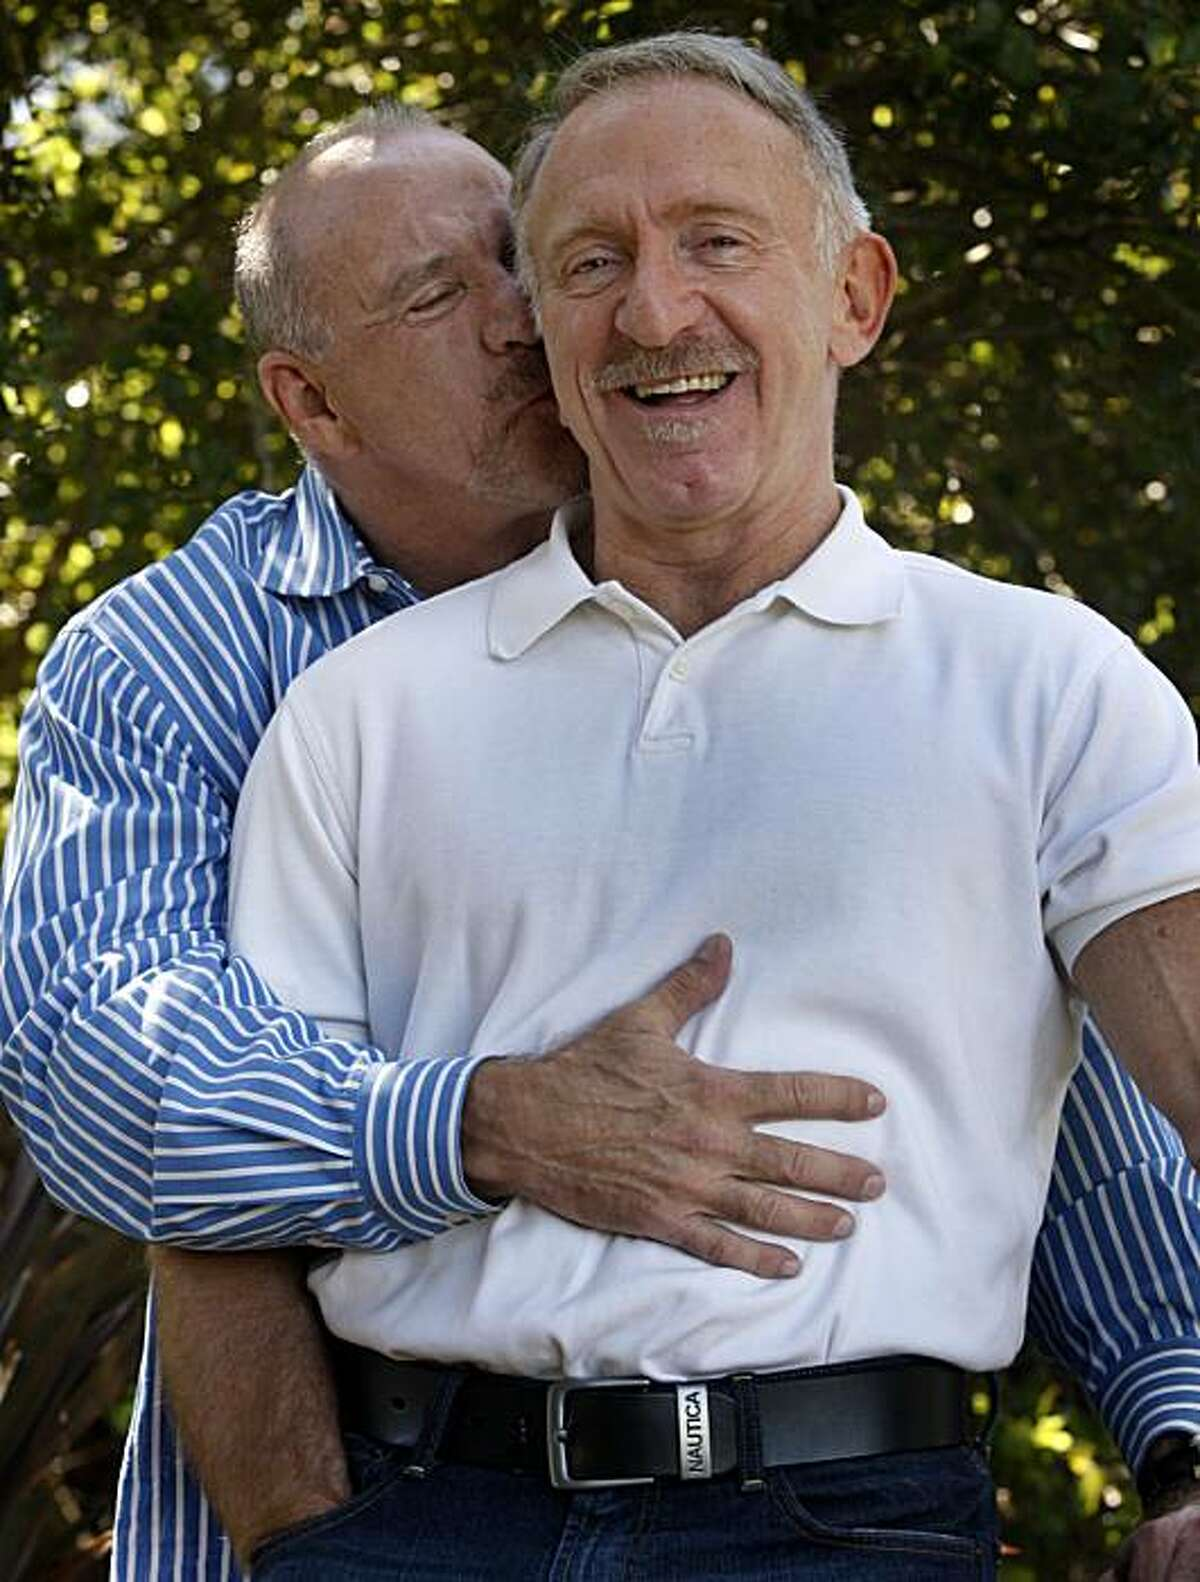 Blake Spears (right) and his partner of 35 years Lanz Lowen relax at their home in Oakland, Calif., on Wednesday, July 14, 2010. The unmarried couple recently completed a self-funded four-year study on open relationships among long-term gay male couples.